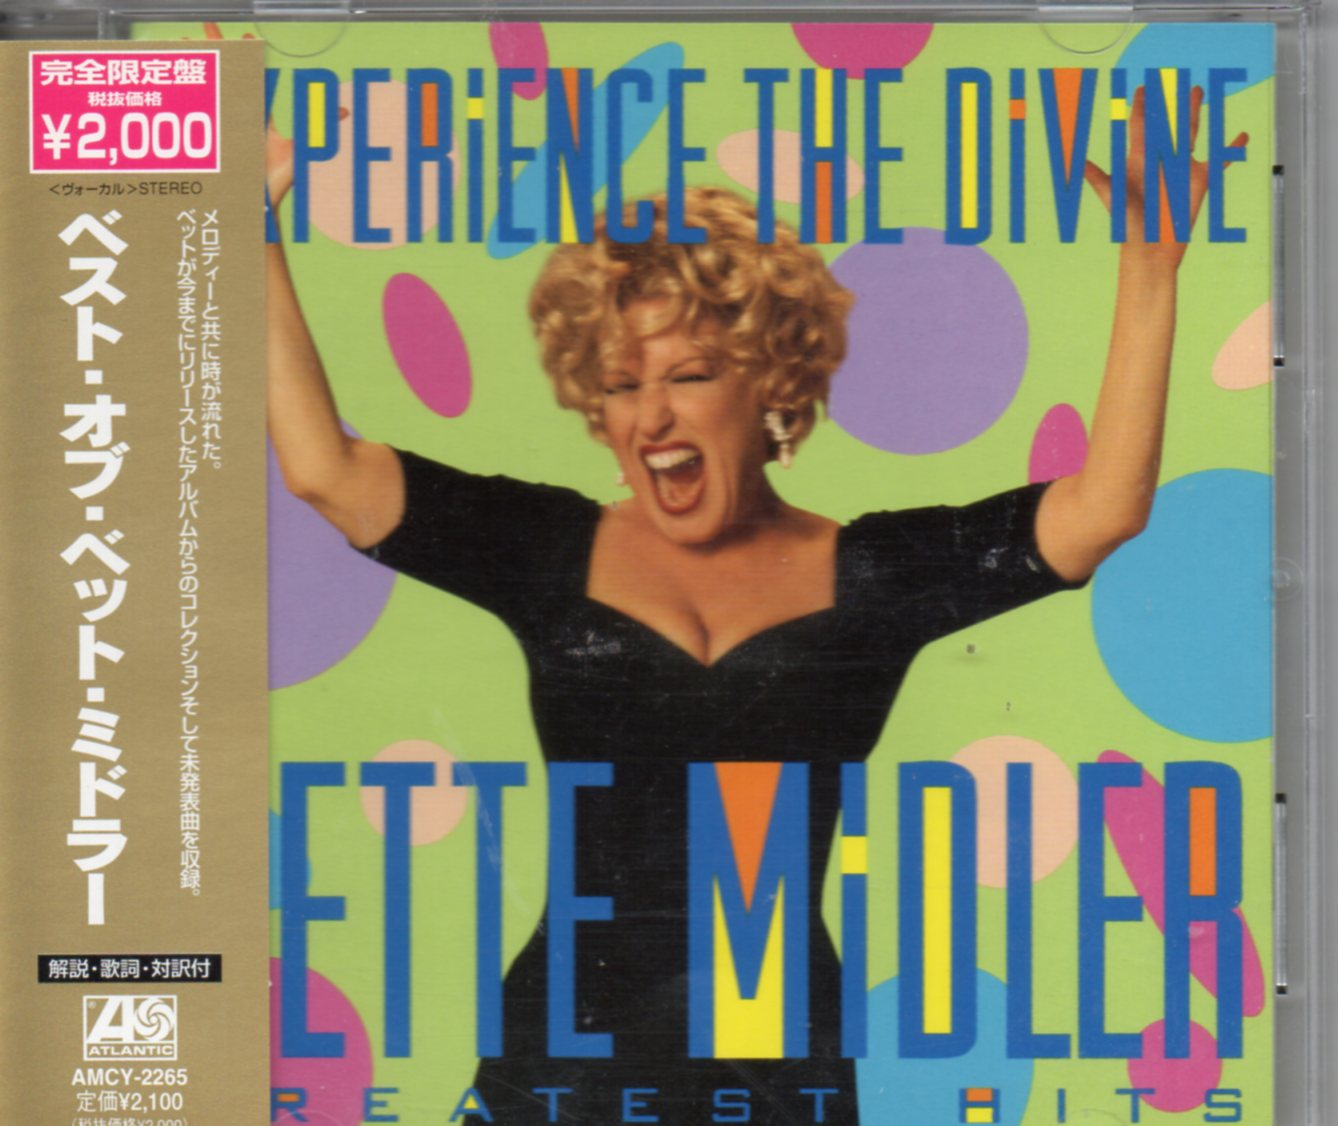 BETTE MIDLER - Married men - Maxi 45T